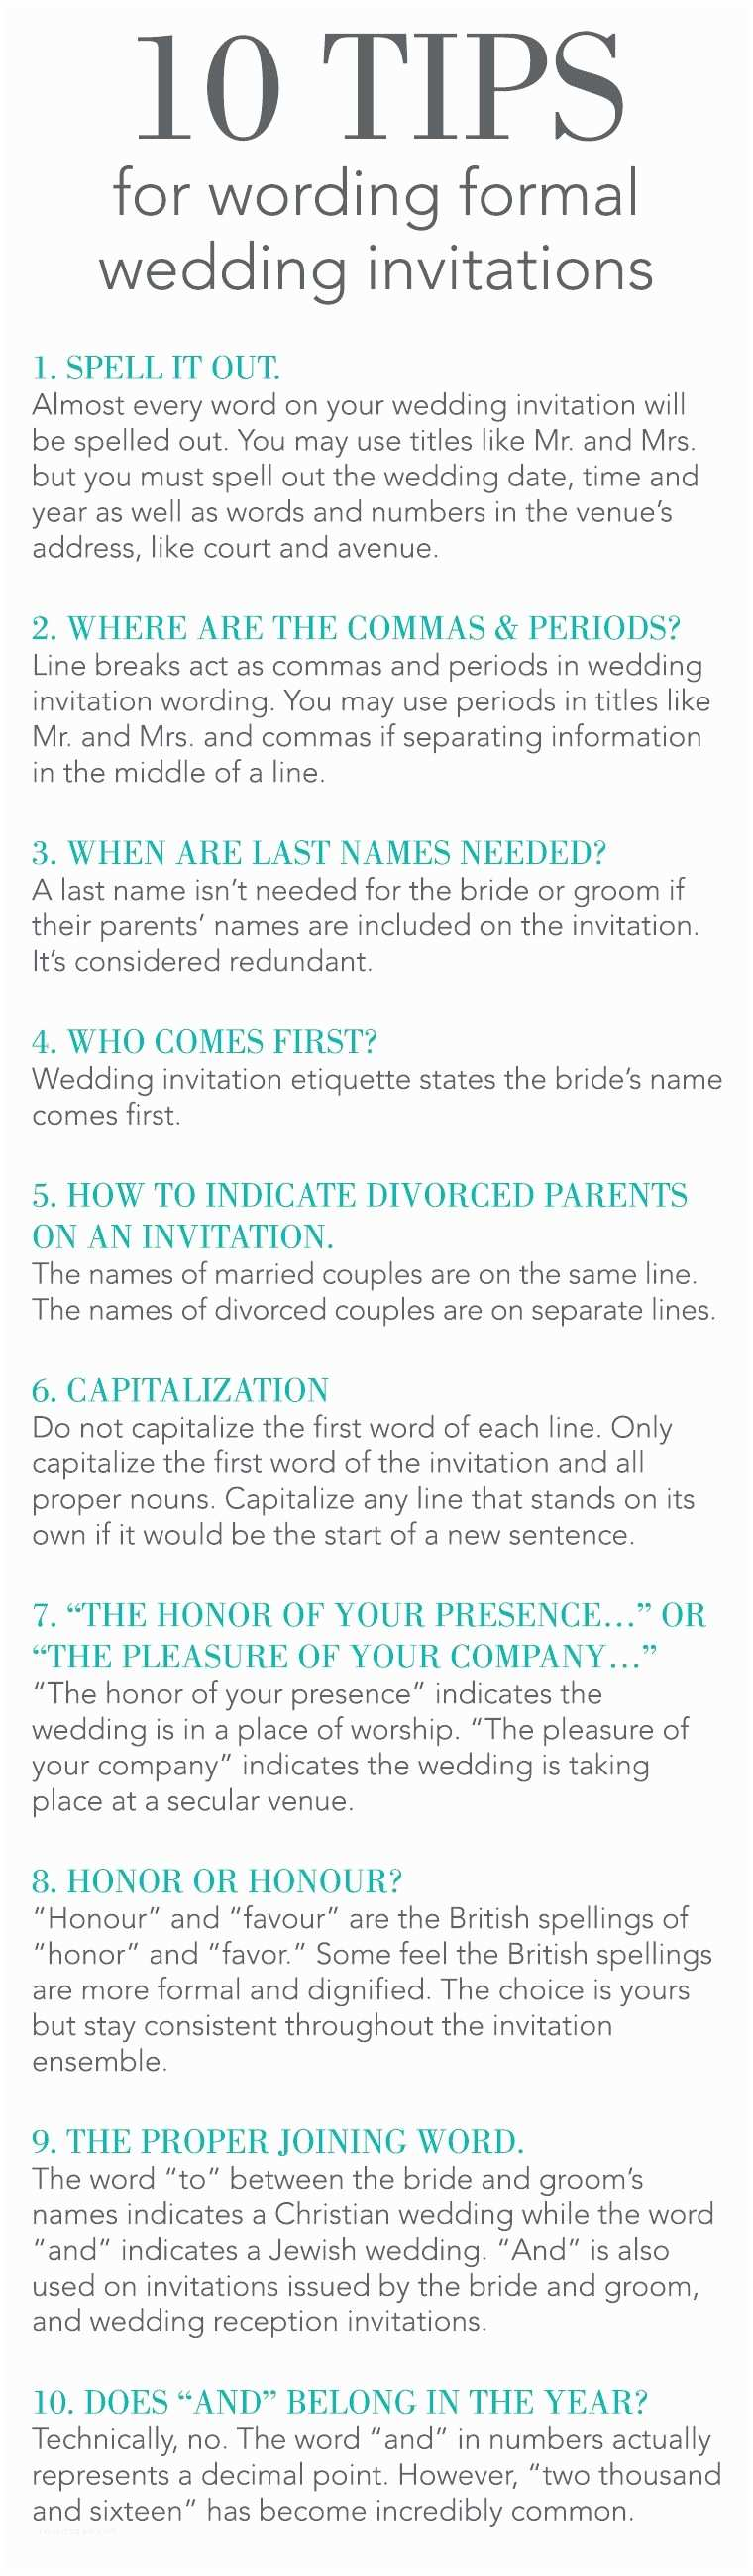 How to Word formal Wedding Invitations Hosting A formal Wedding but are Uncertain How to Word